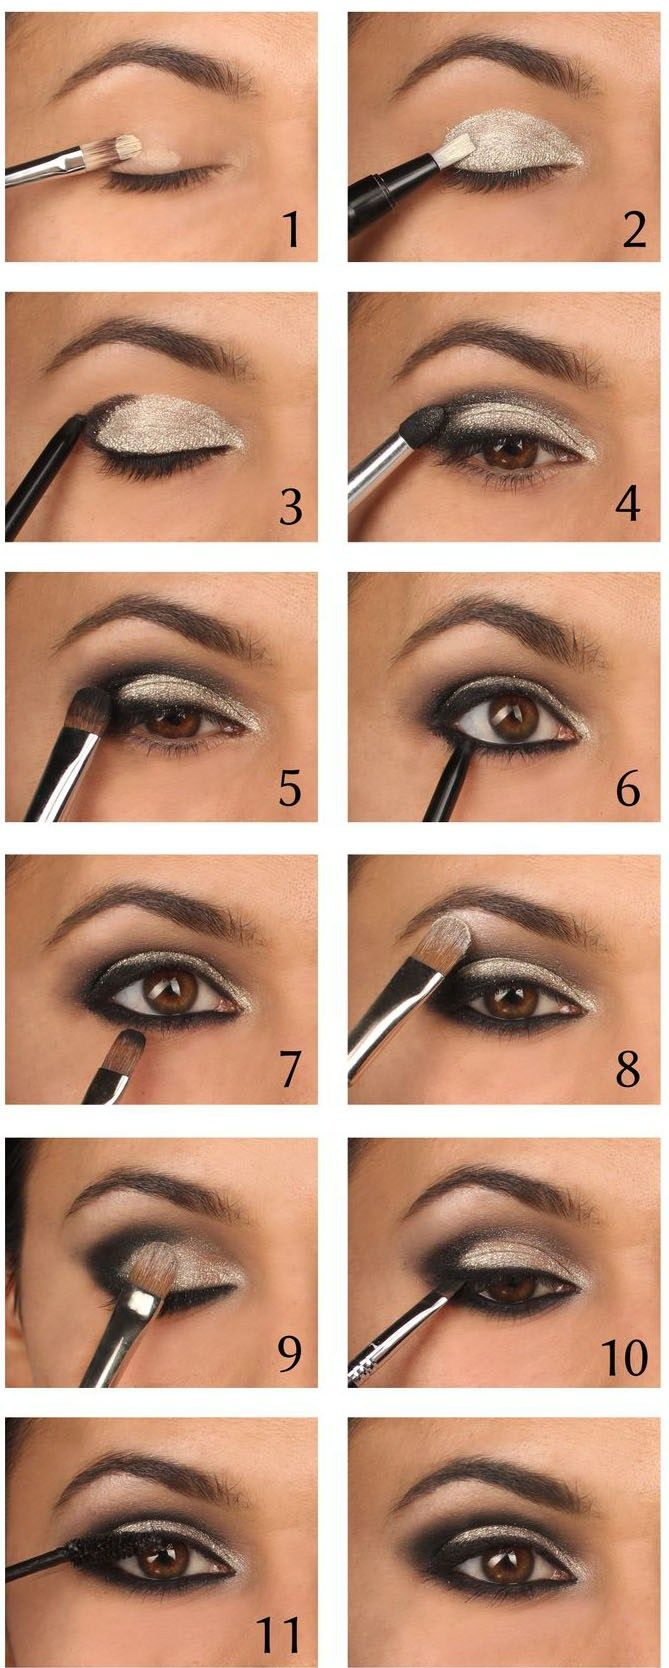 White Makeup Brown Makeup How To Apply Eyeliner On Hooded Eyes Droopy Eyes  Round And Downturned